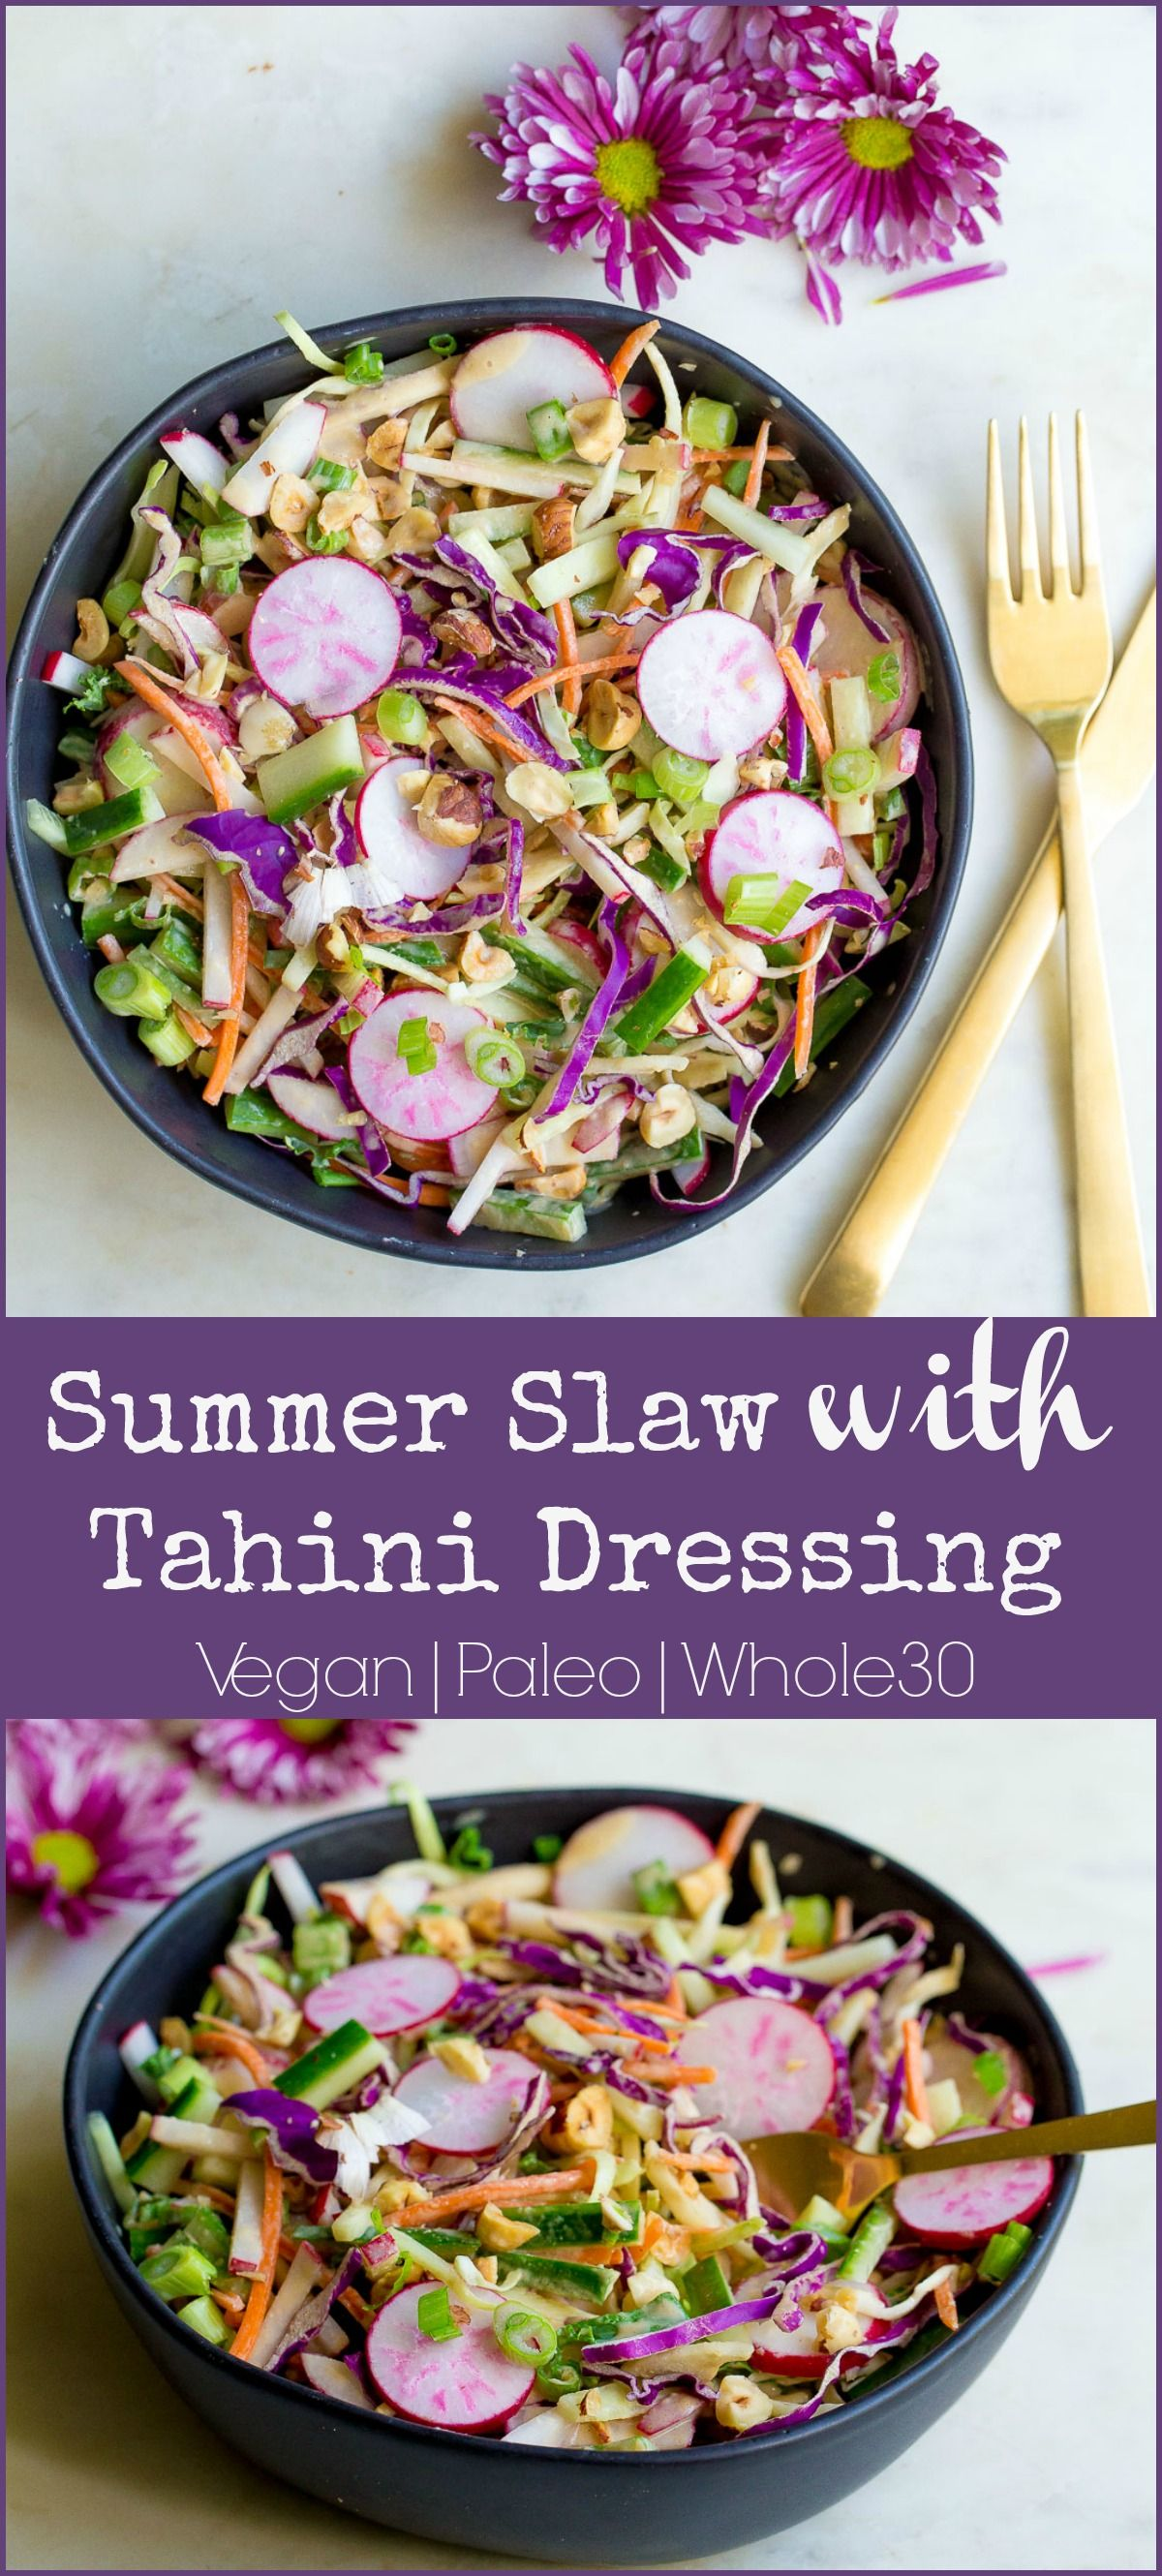 Summer Slaw with Tahini Dressing images